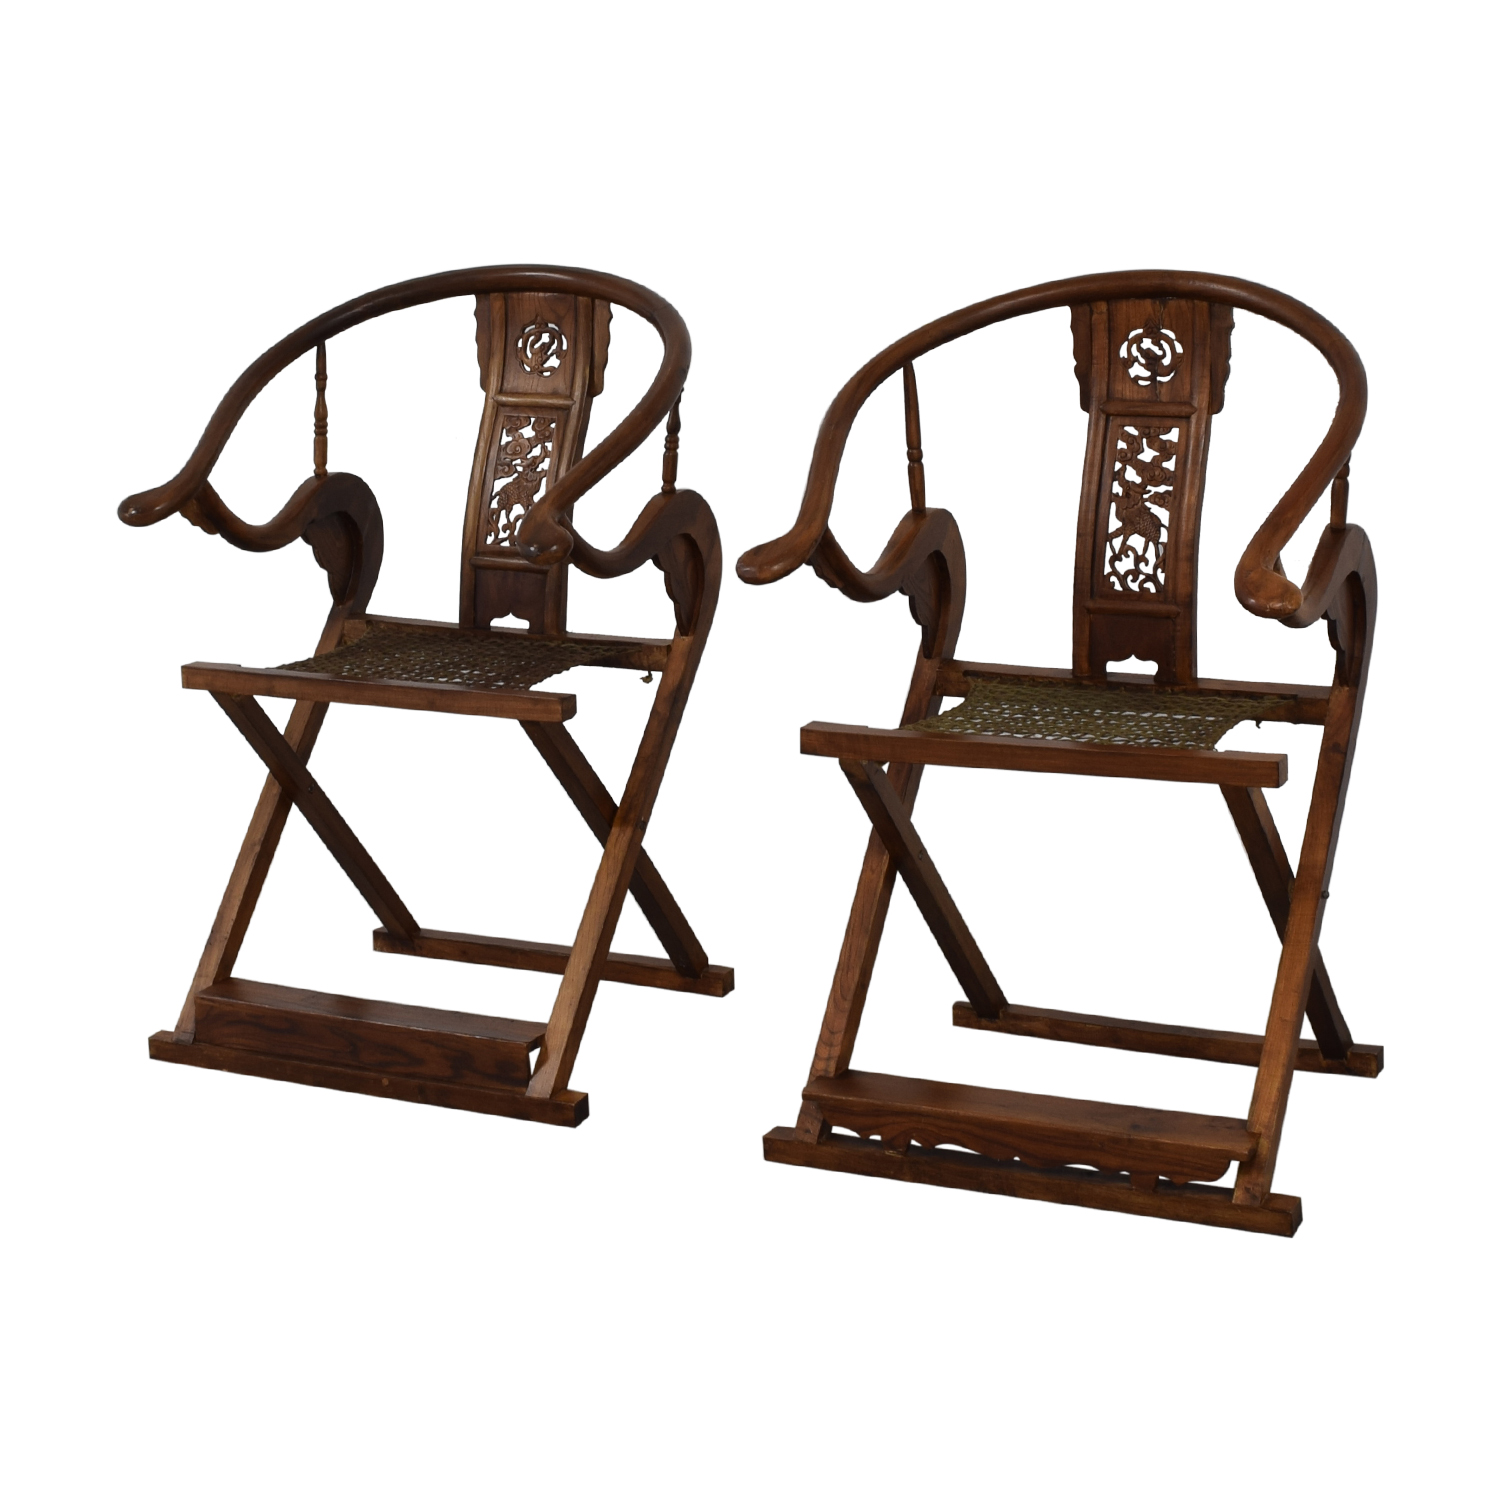 Antique Chinese Emperor Horseshoe Folding Chairs sale